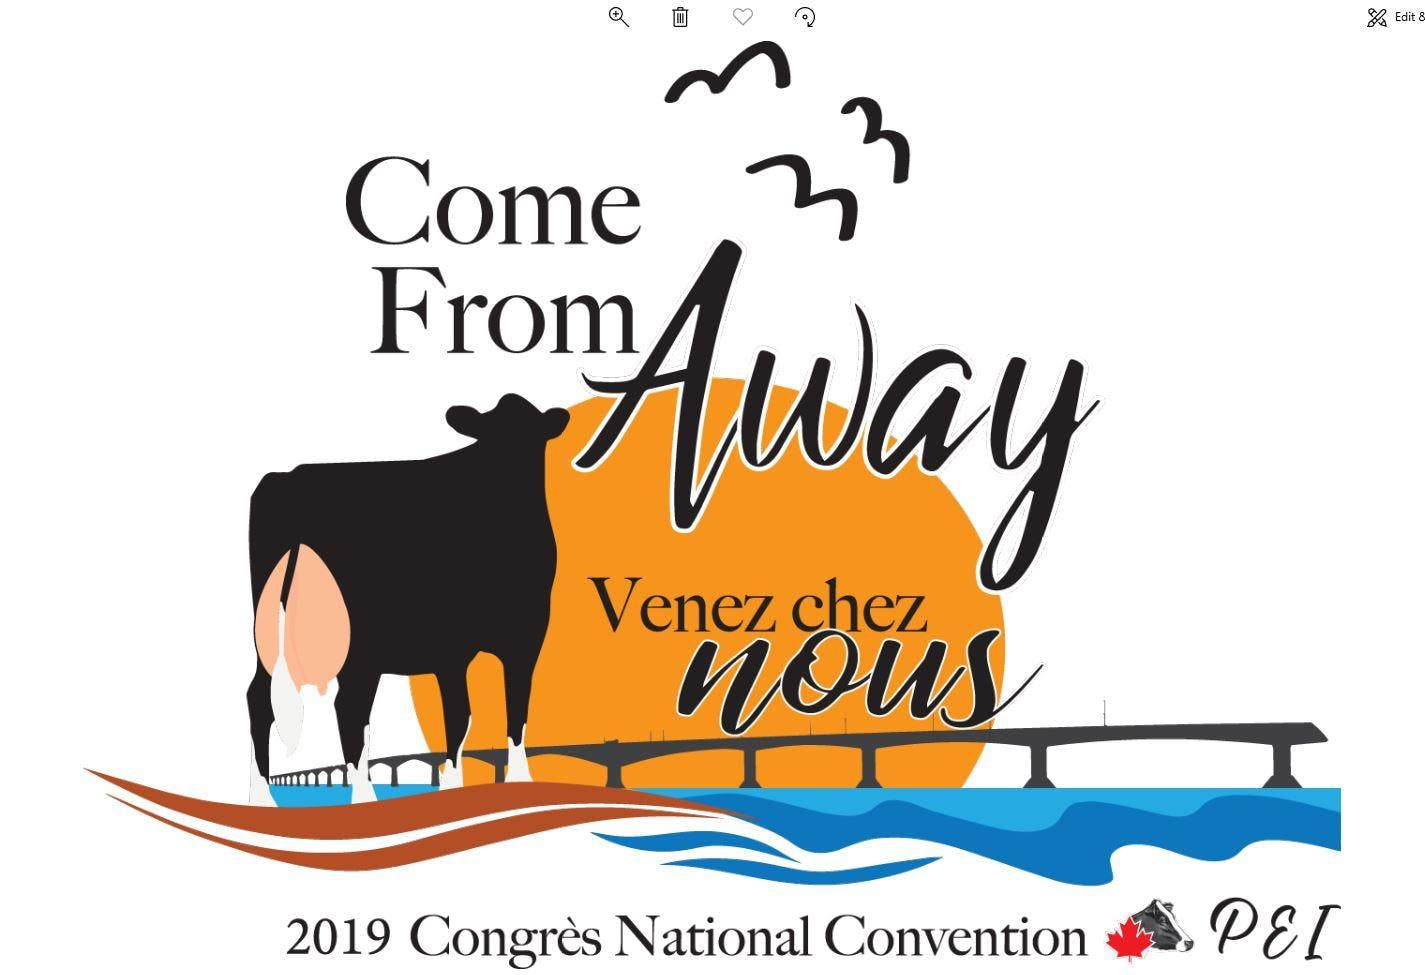 2019 Congrès National Holstein Convention